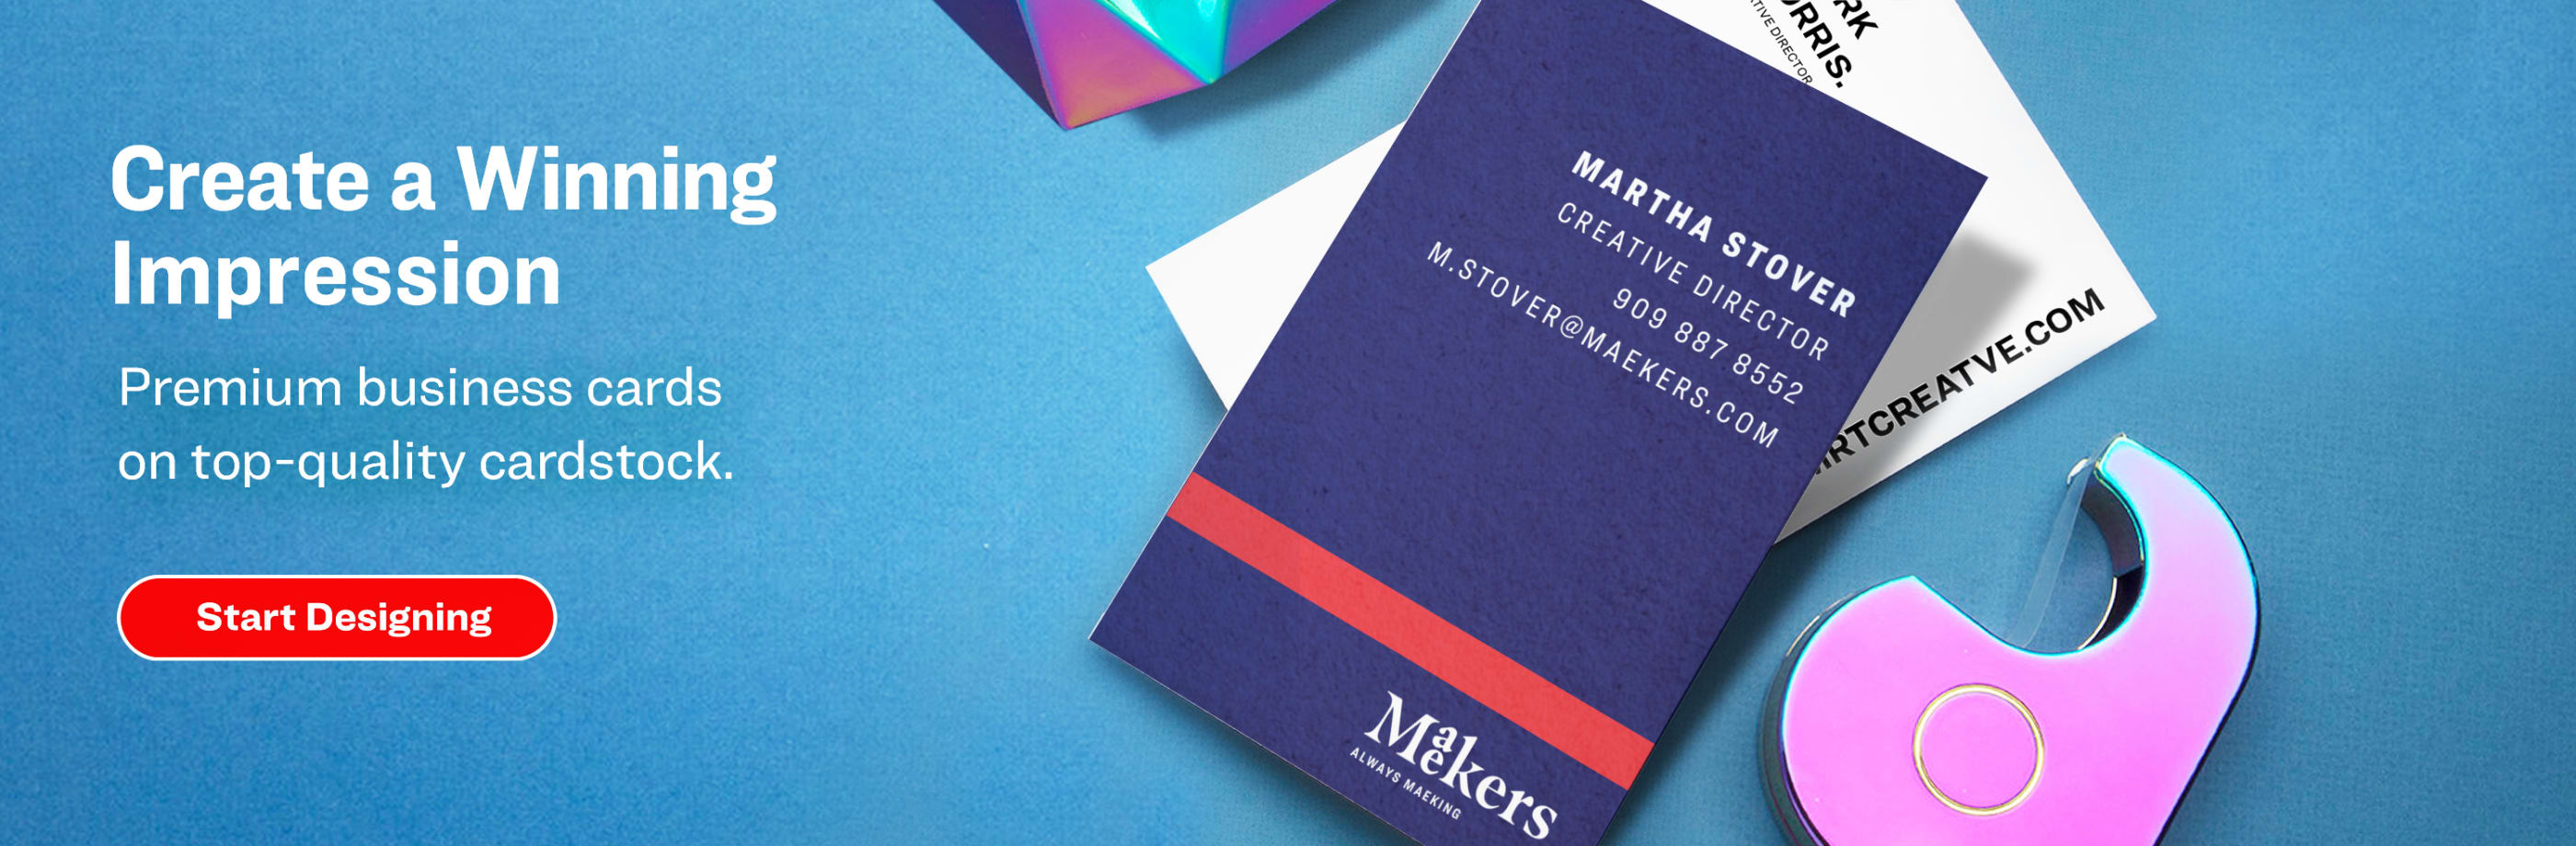 Create a Winning Impression. Premium printing on top-quality cardstock.